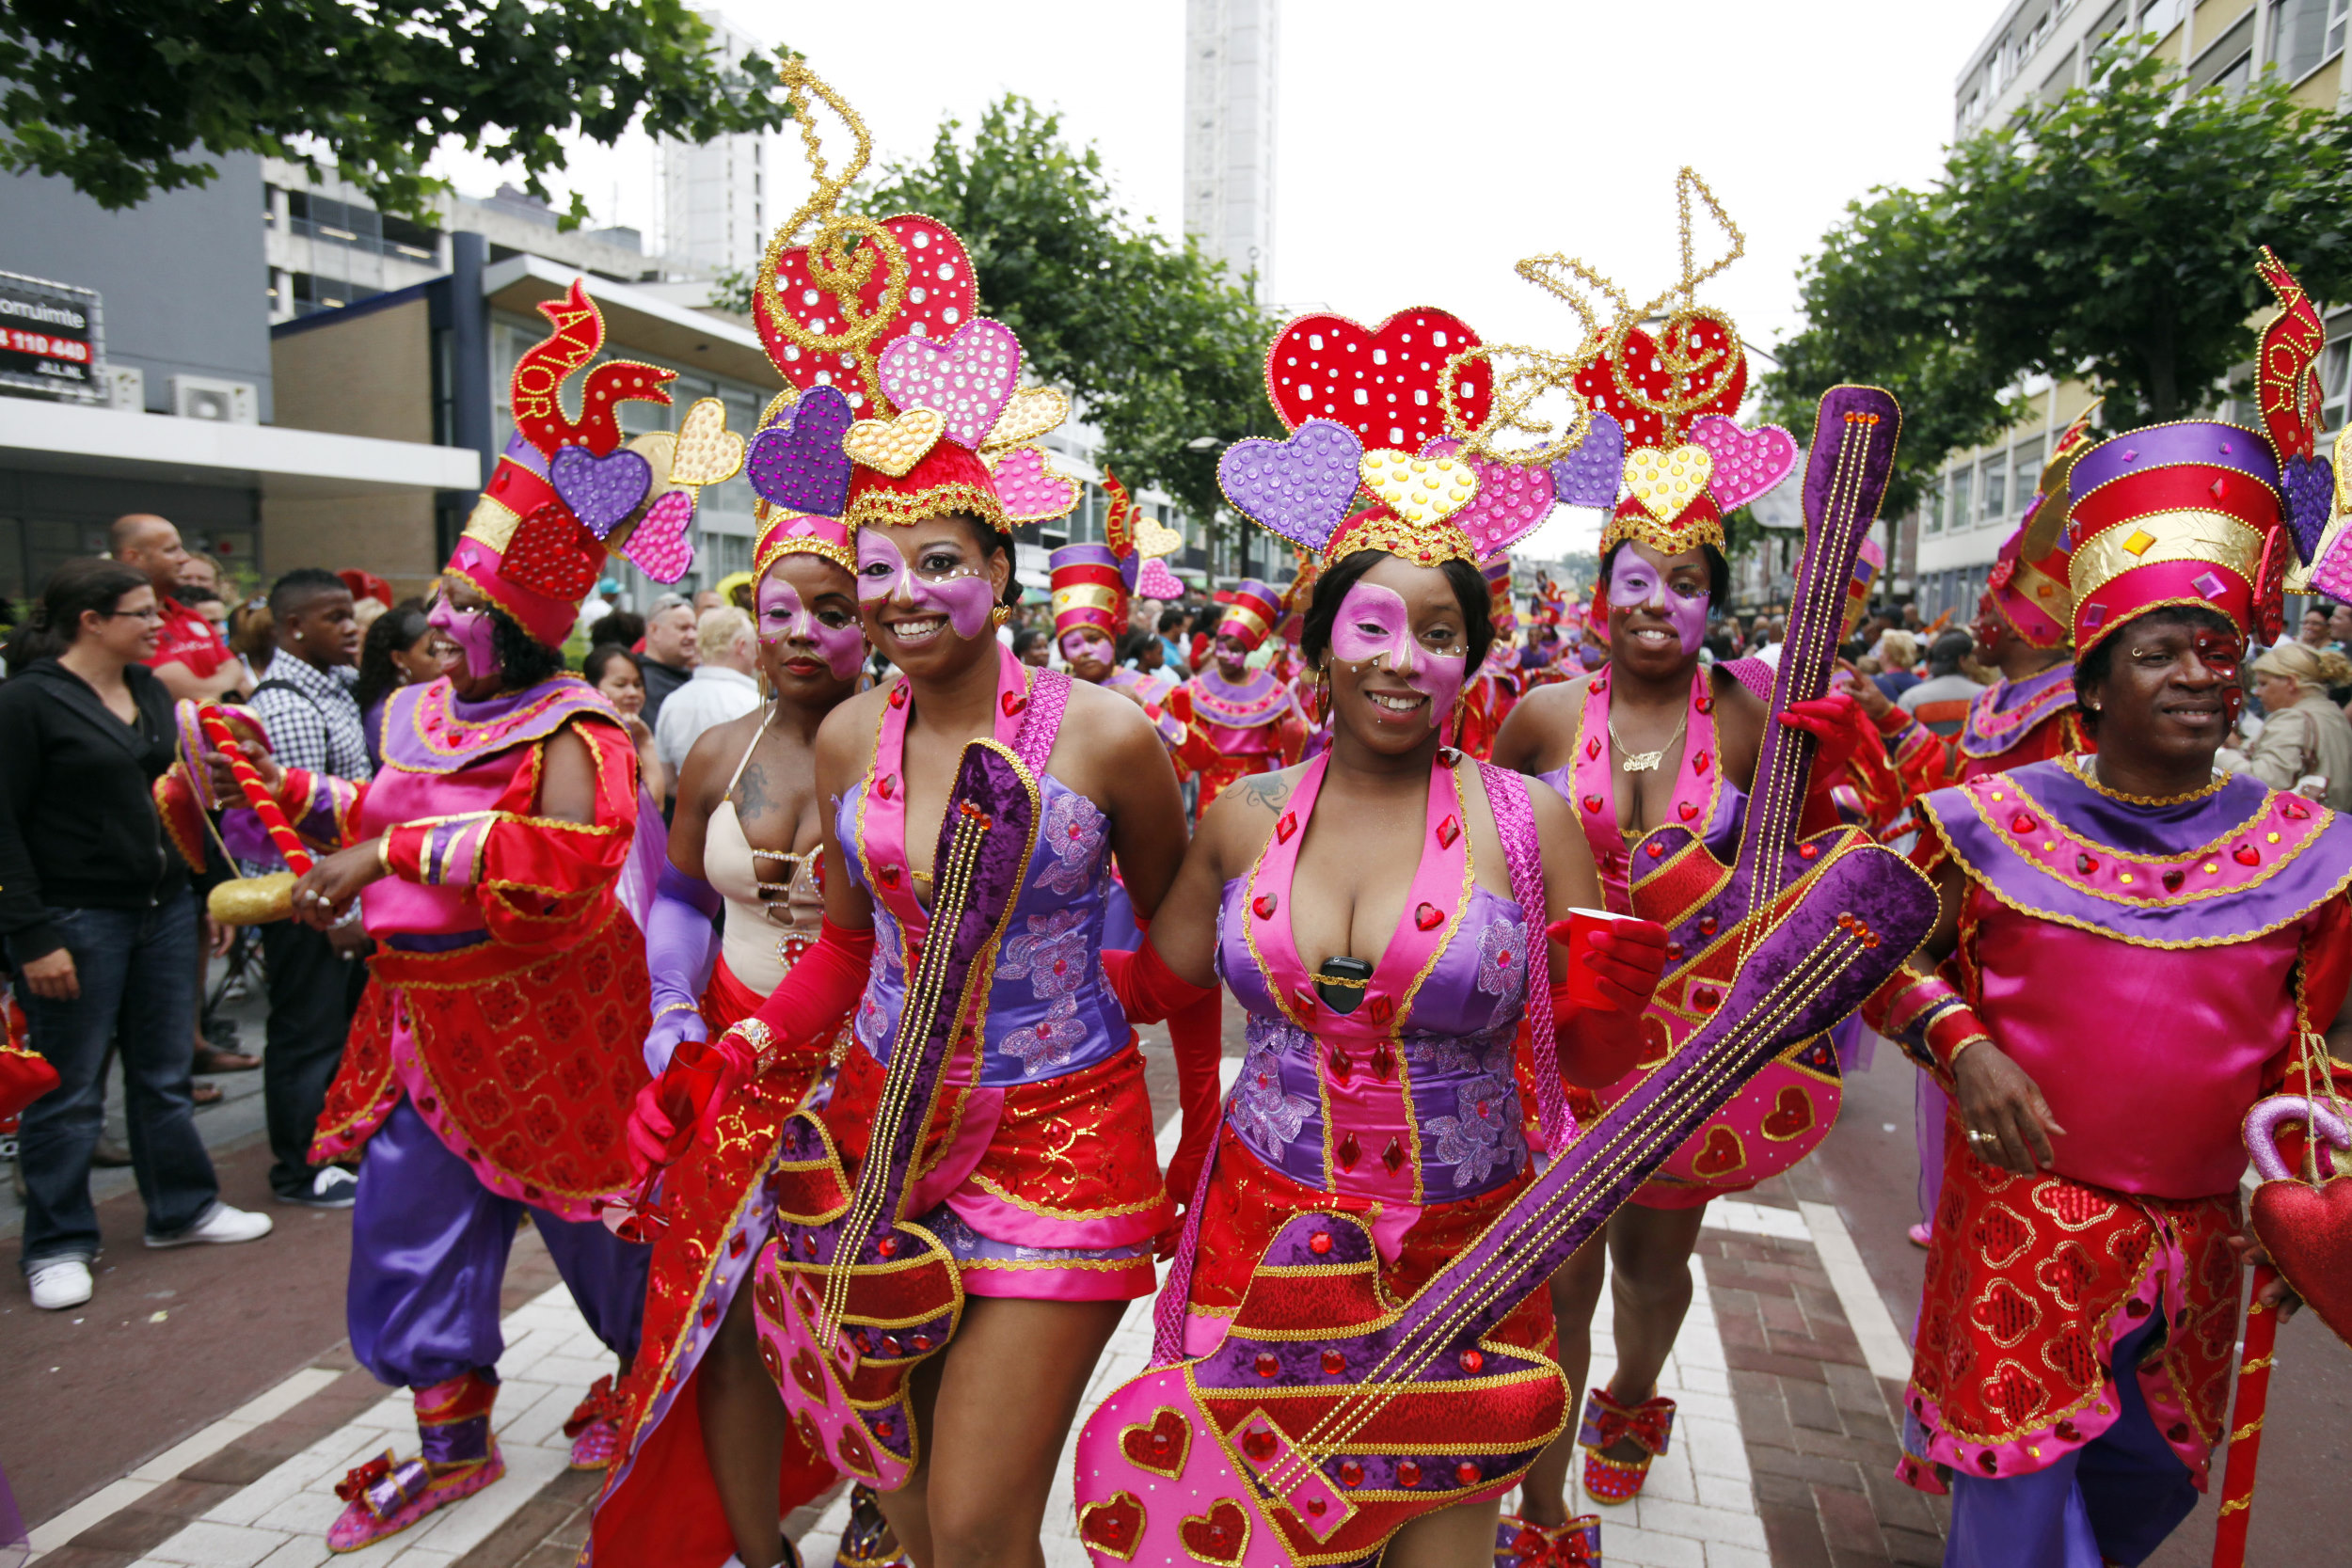 feest Rotterdam Zomercarnaval zomer carnaval rood dames optocht parade